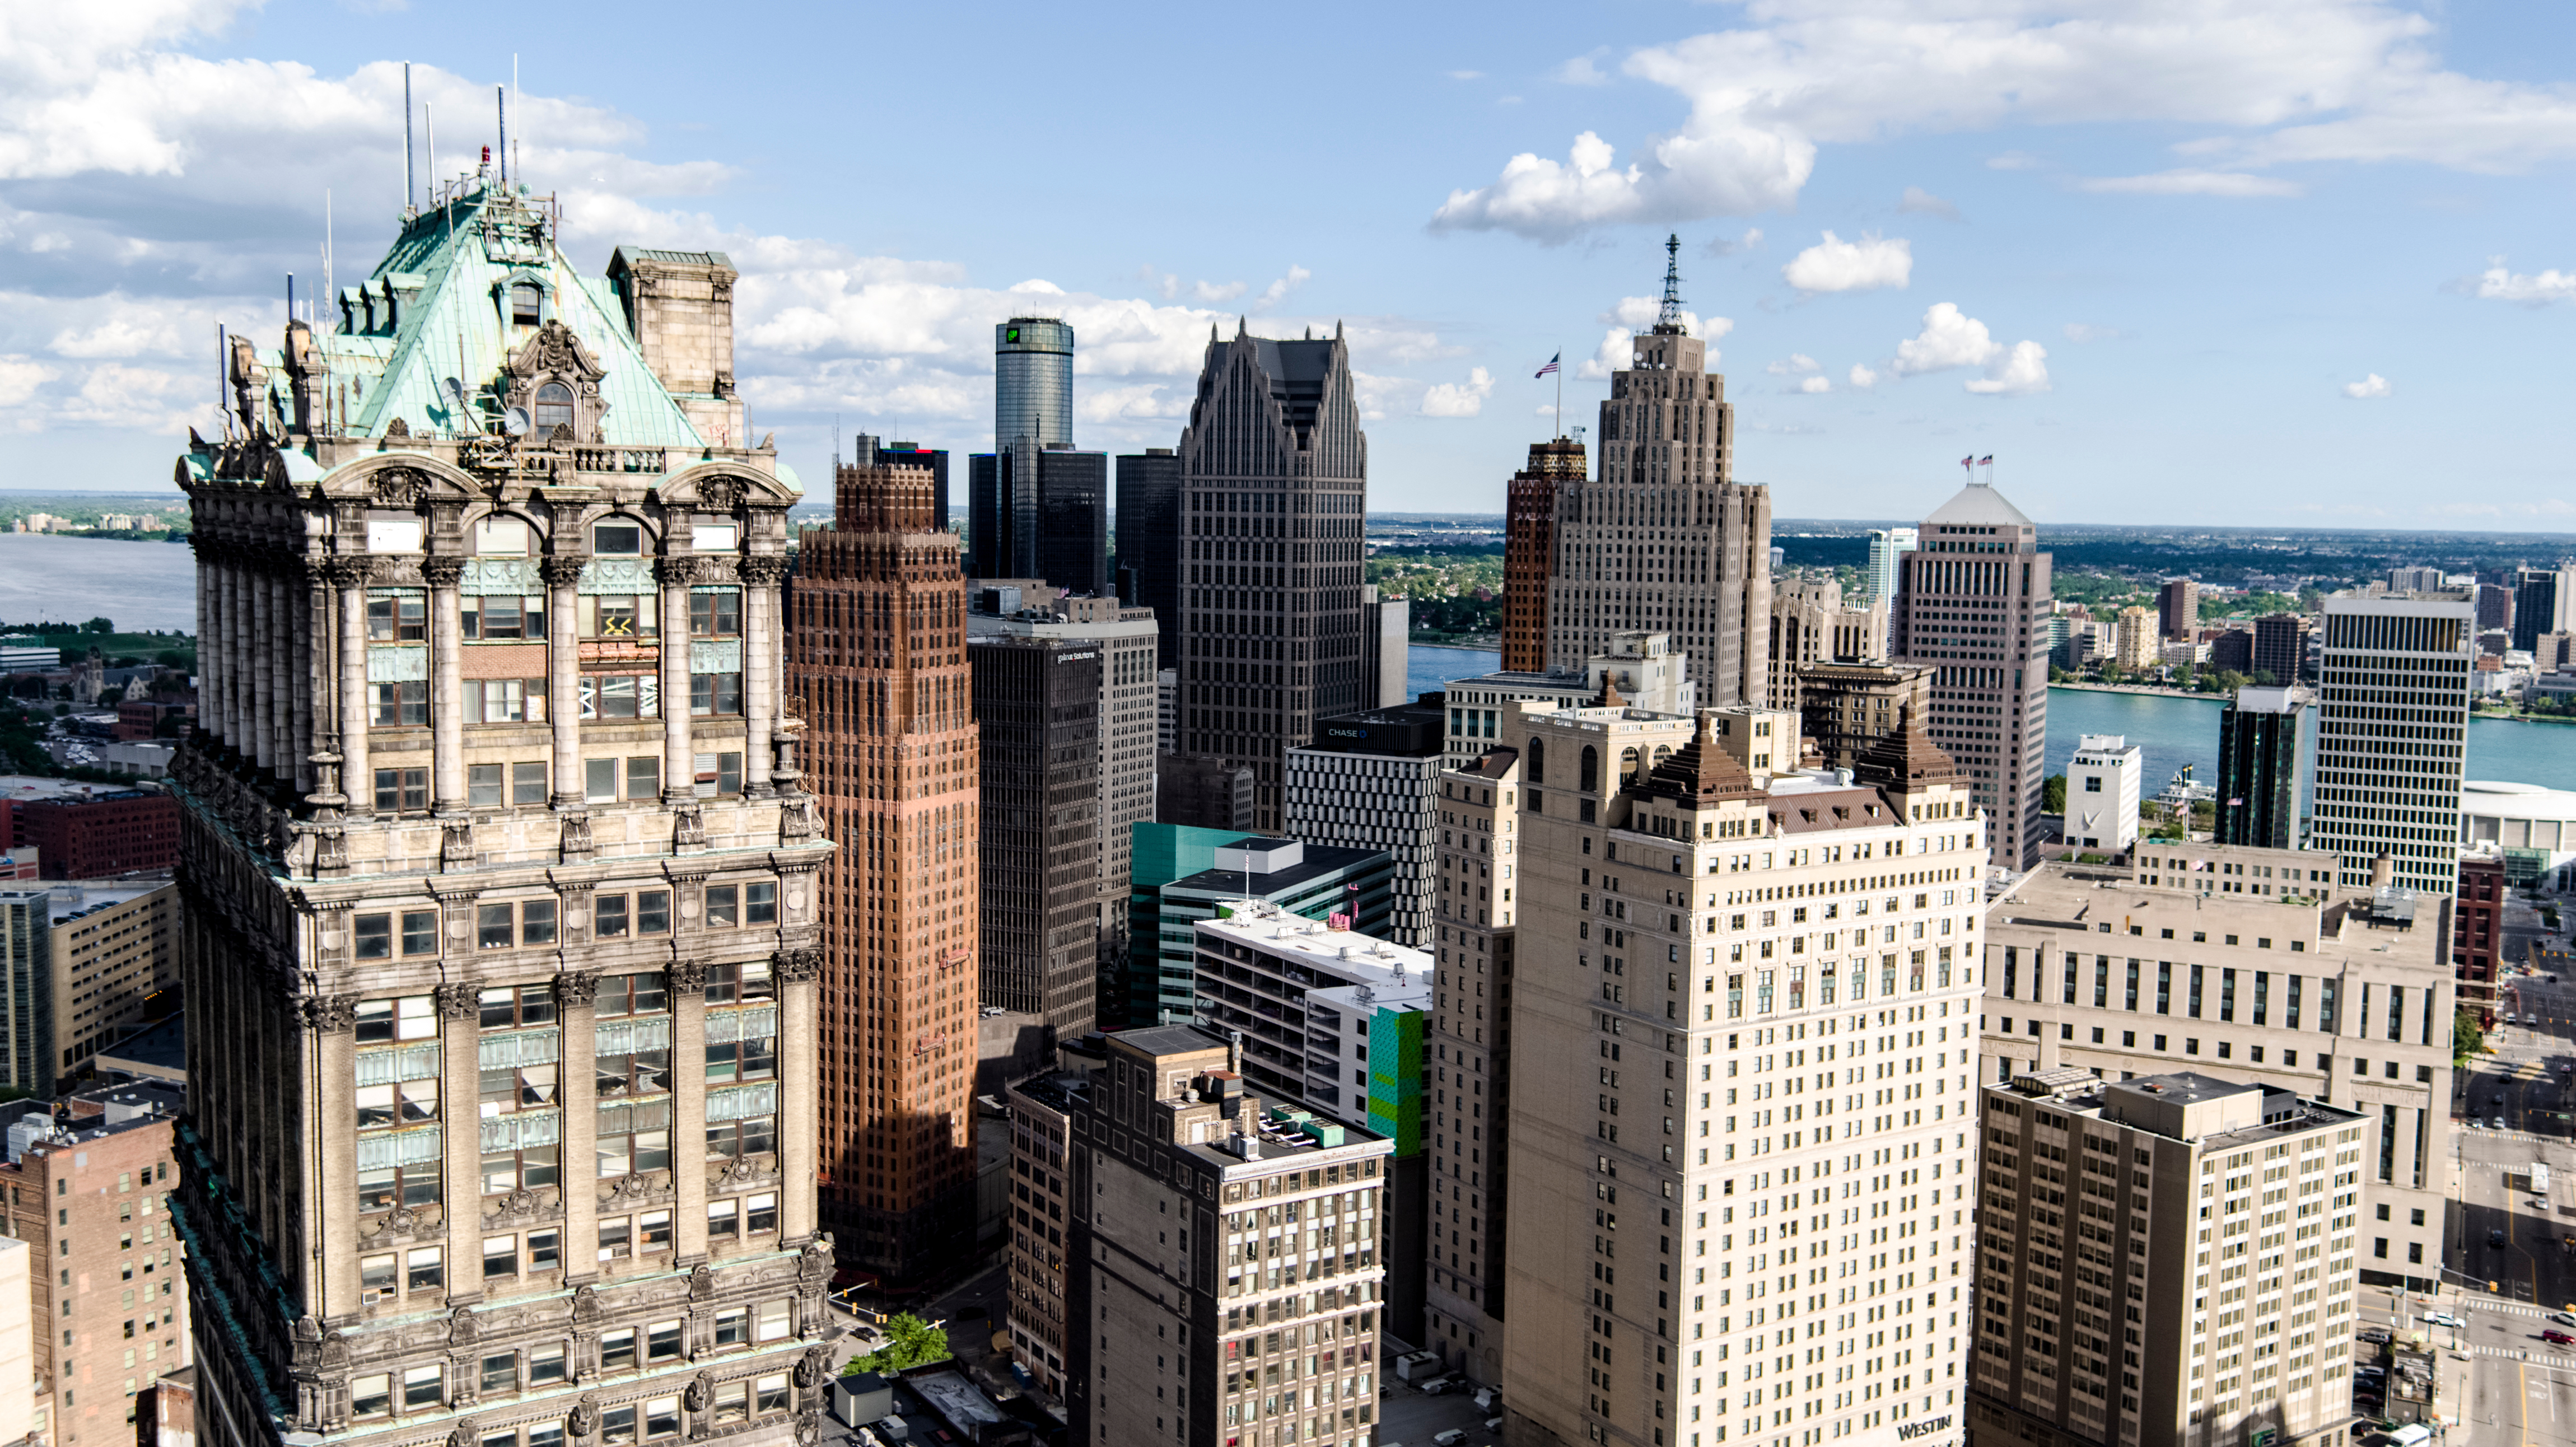 A close crop of downtown Detroit buildings showcases a mix of architectural styles.